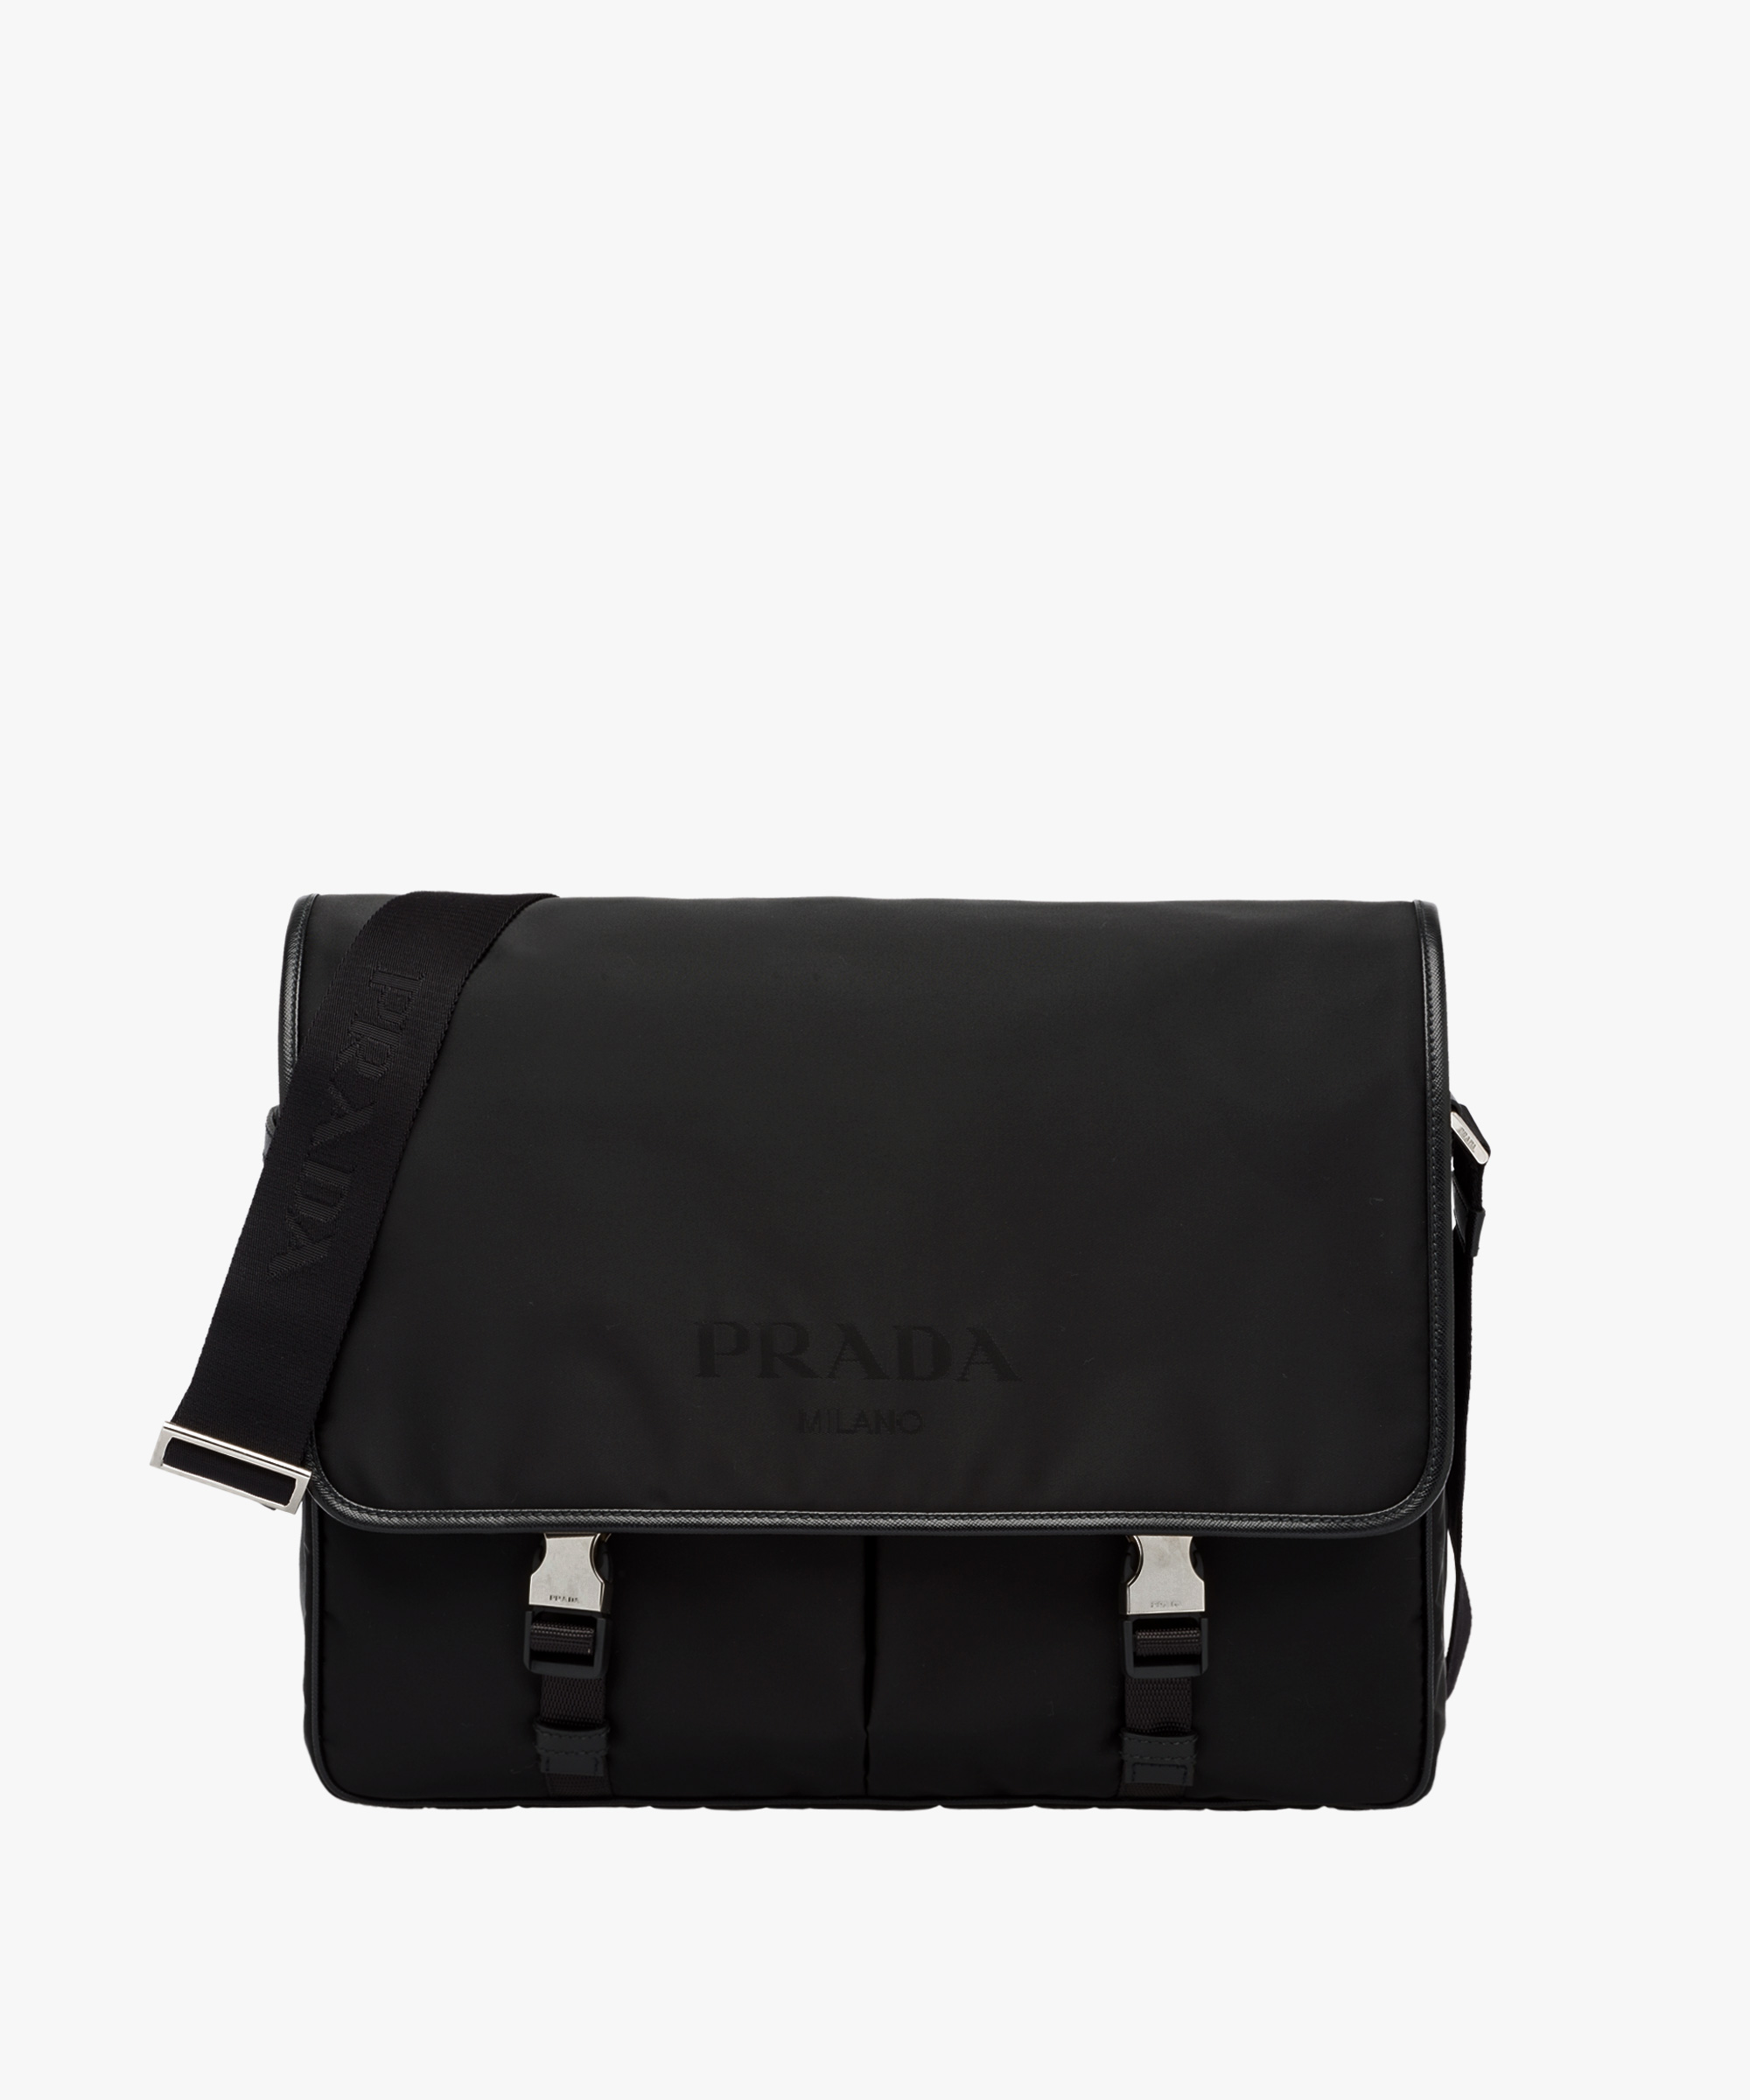 Nylon Bag Prada Black